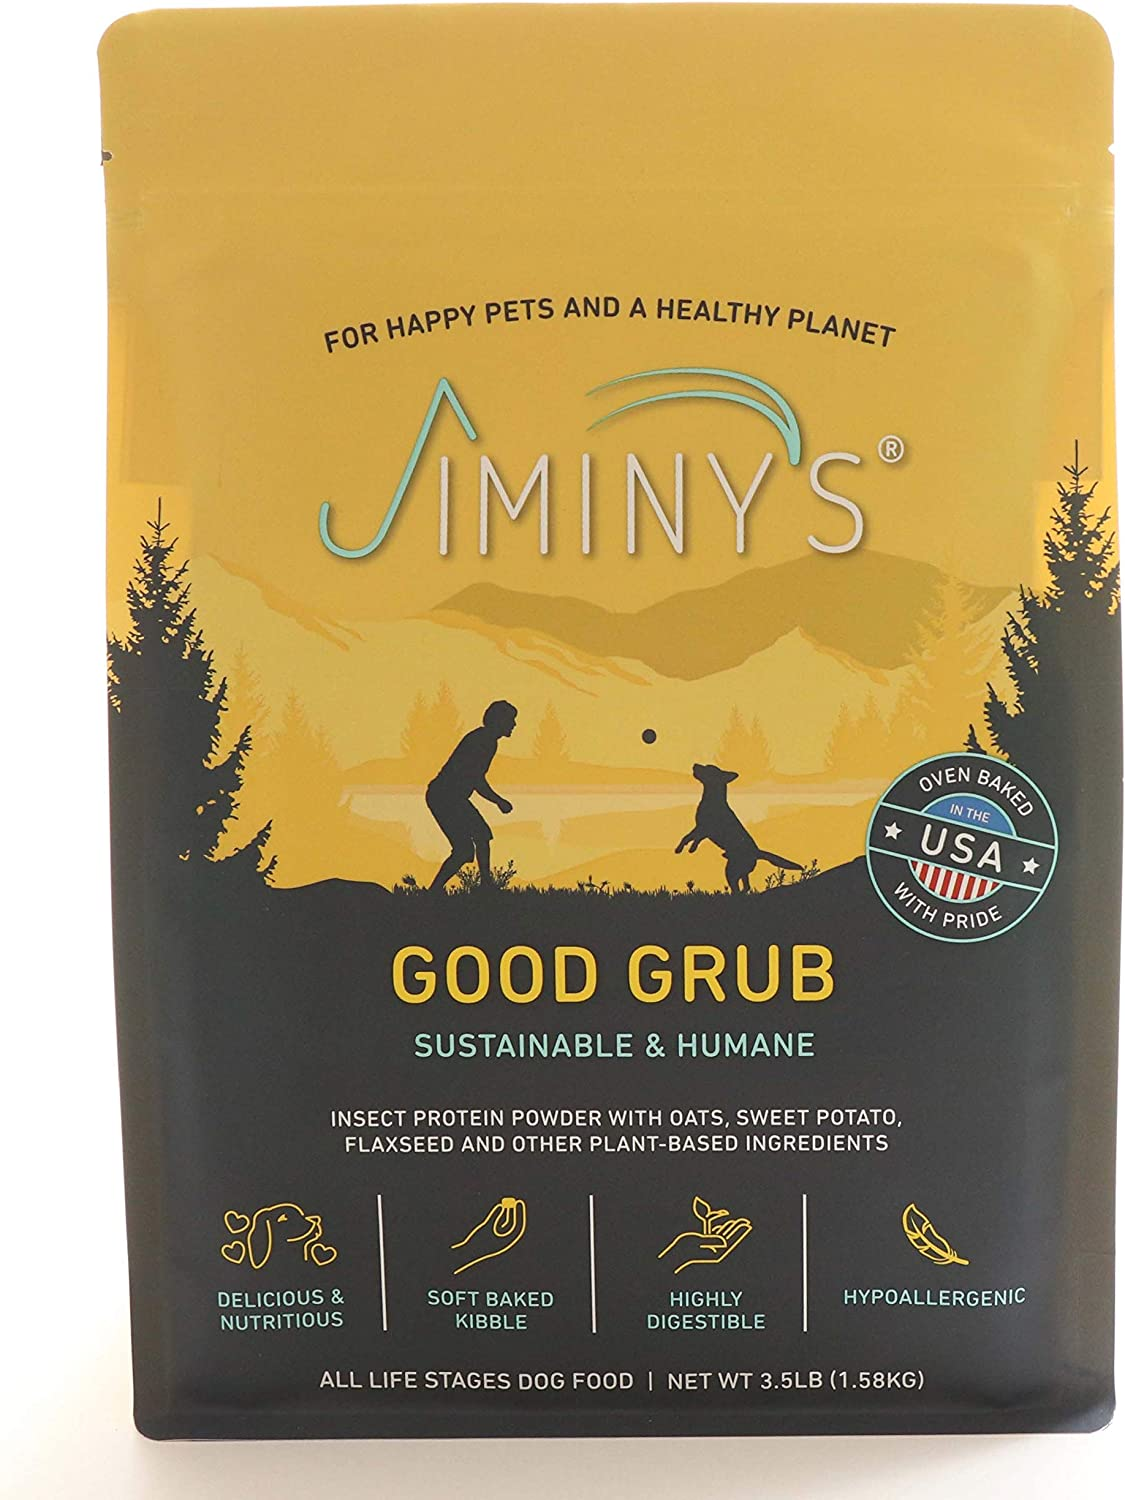 Jiminy's Good Grub Insect Protein Oven-Baked Dog Food 3.5 lb Bag   100% Made in The USA   Gluten-Free   Sustainable   Limited Ingredients   High Protein   Hypoallergenic